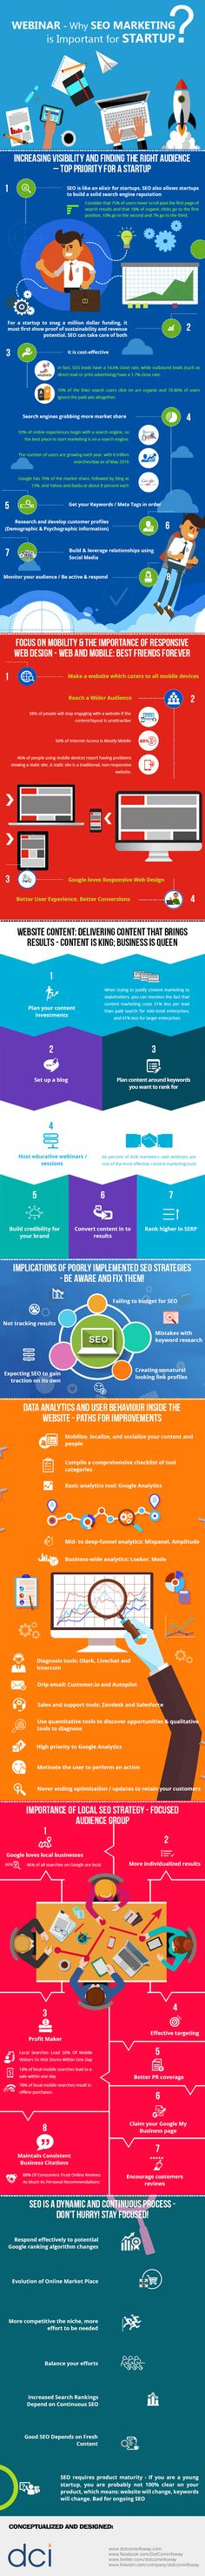 Importance of SEO Marketing for Startups #Infographic #Startup #SEO